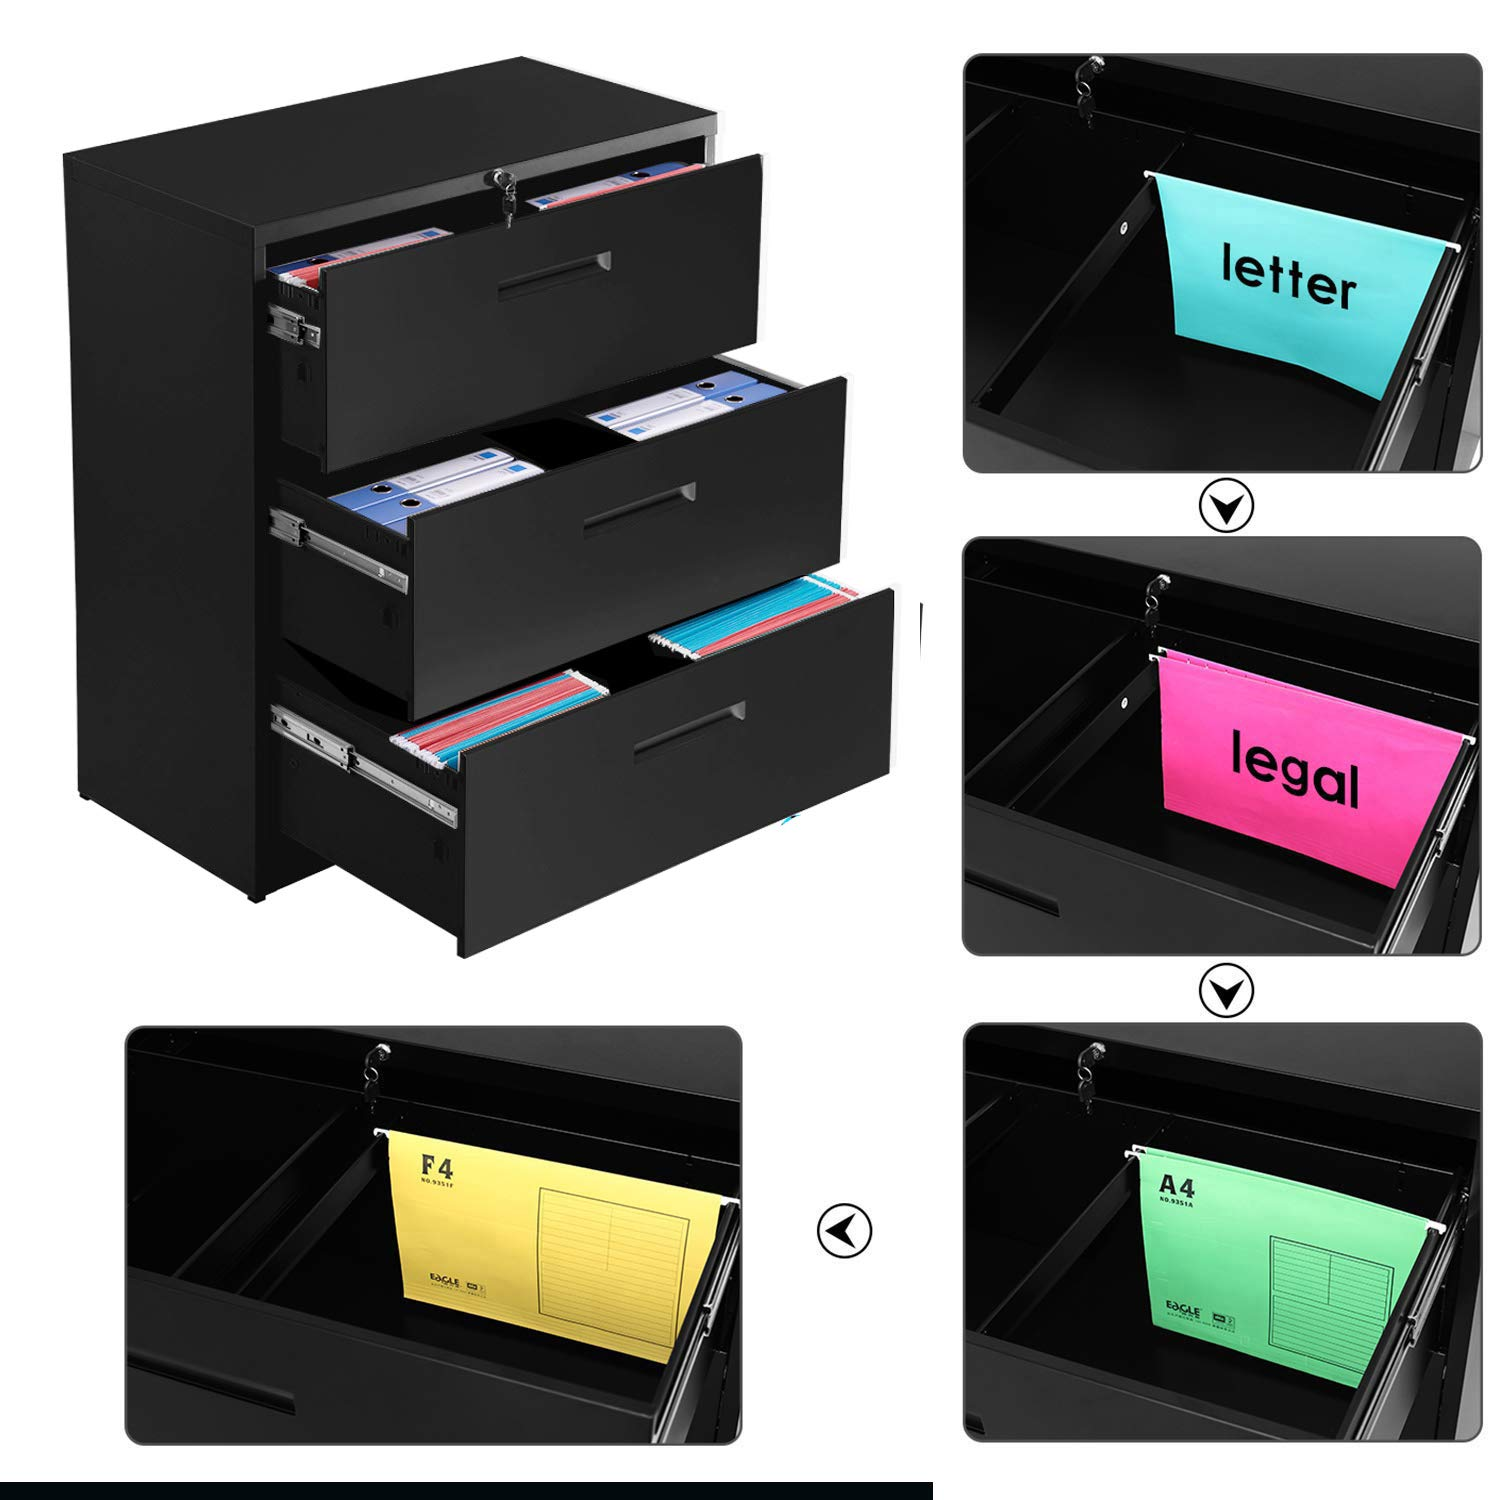 Merax lateral File Cabinet 2 Drawer Locking Filing Cabinet 3 Drawers Metal Organizer with Heavy Duty Hanging File Frame for Legal & Business Files Office Home Storage by Merax (Image #3)